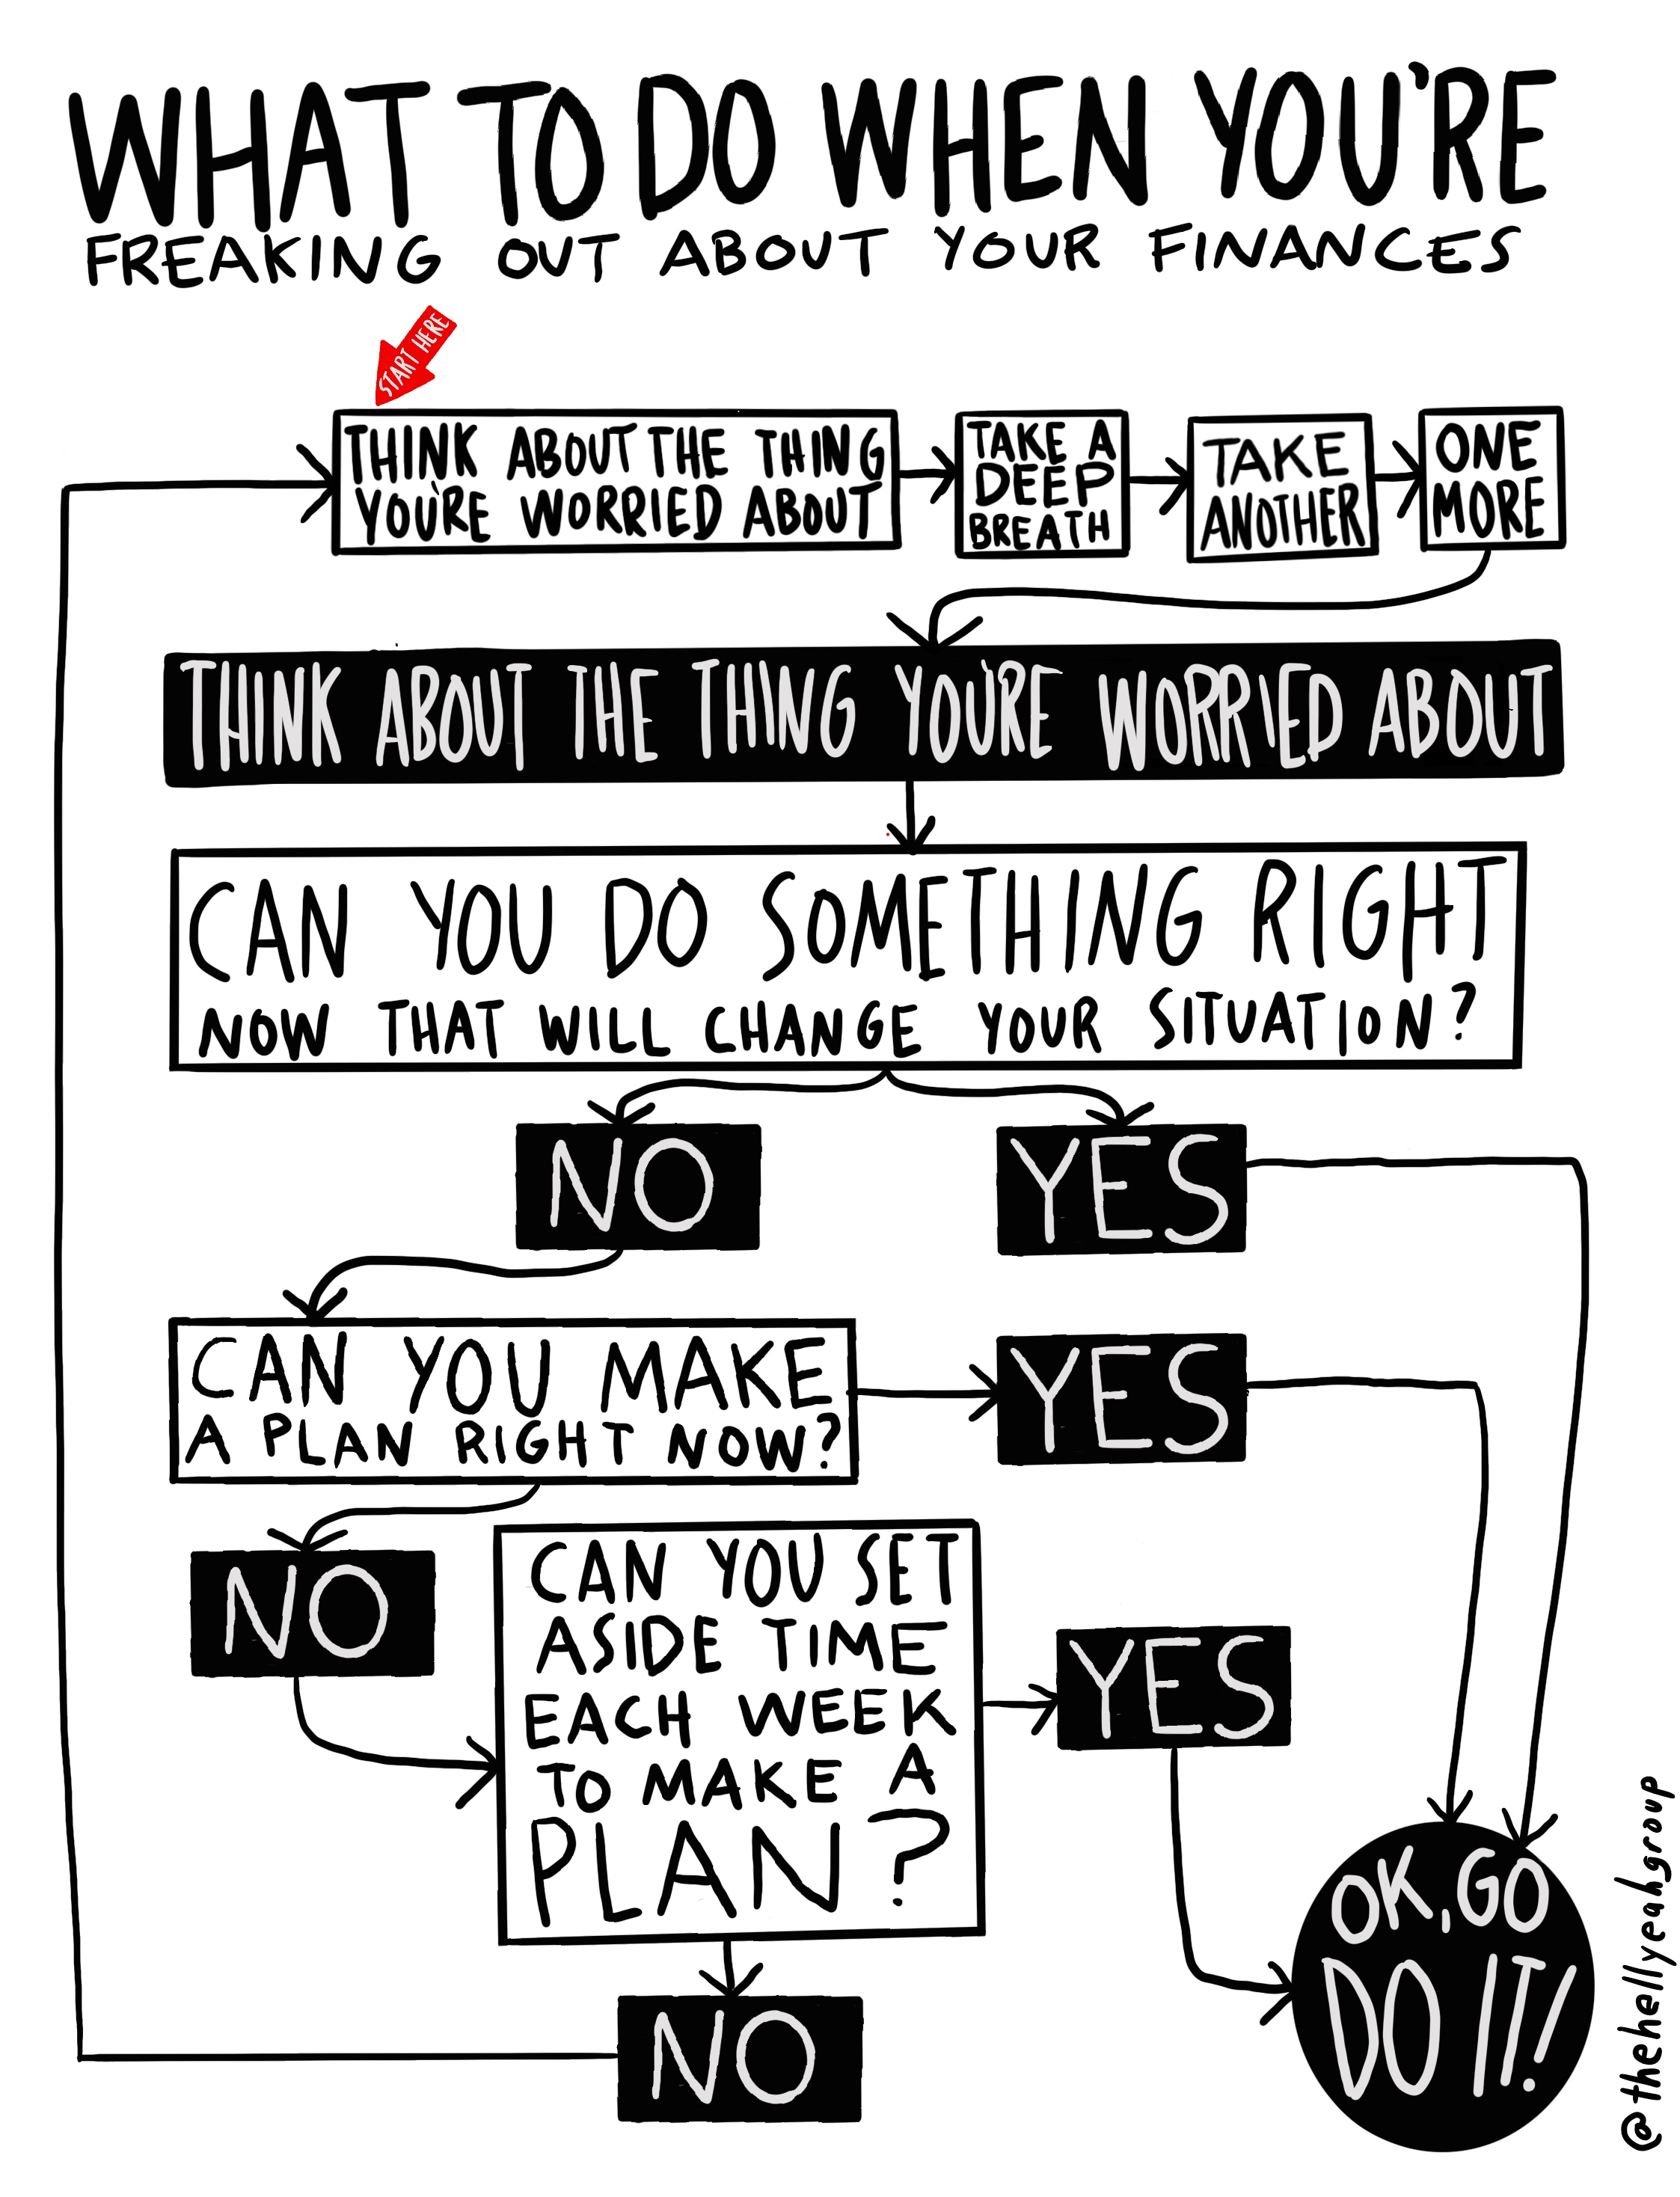 What to do when you're freaking out about your finances flow chart